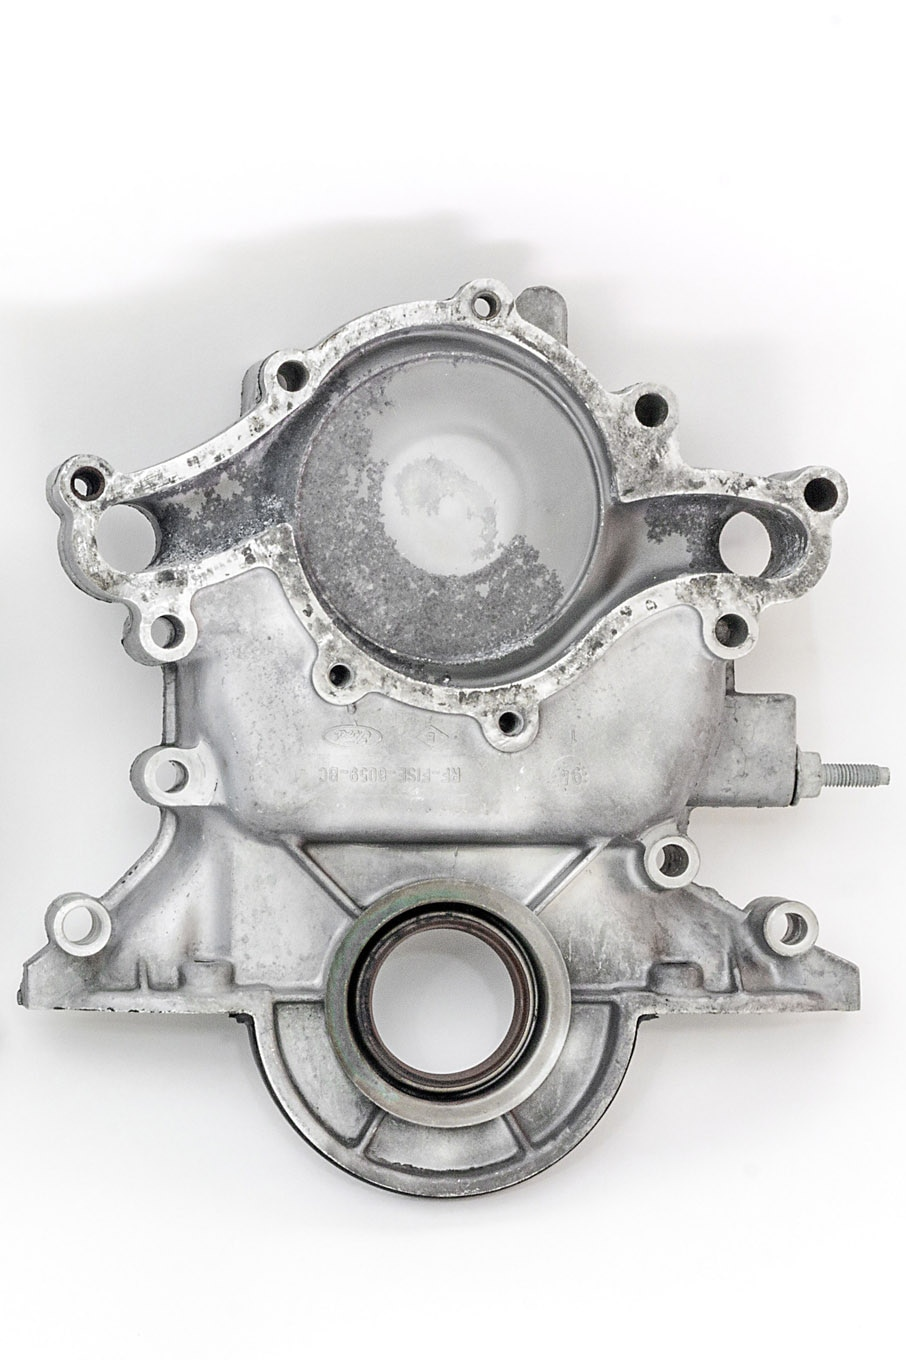 hight resolution of 10 so called explorer water pumps don t have a backing plate instead they bolt directly to this unique timing cover